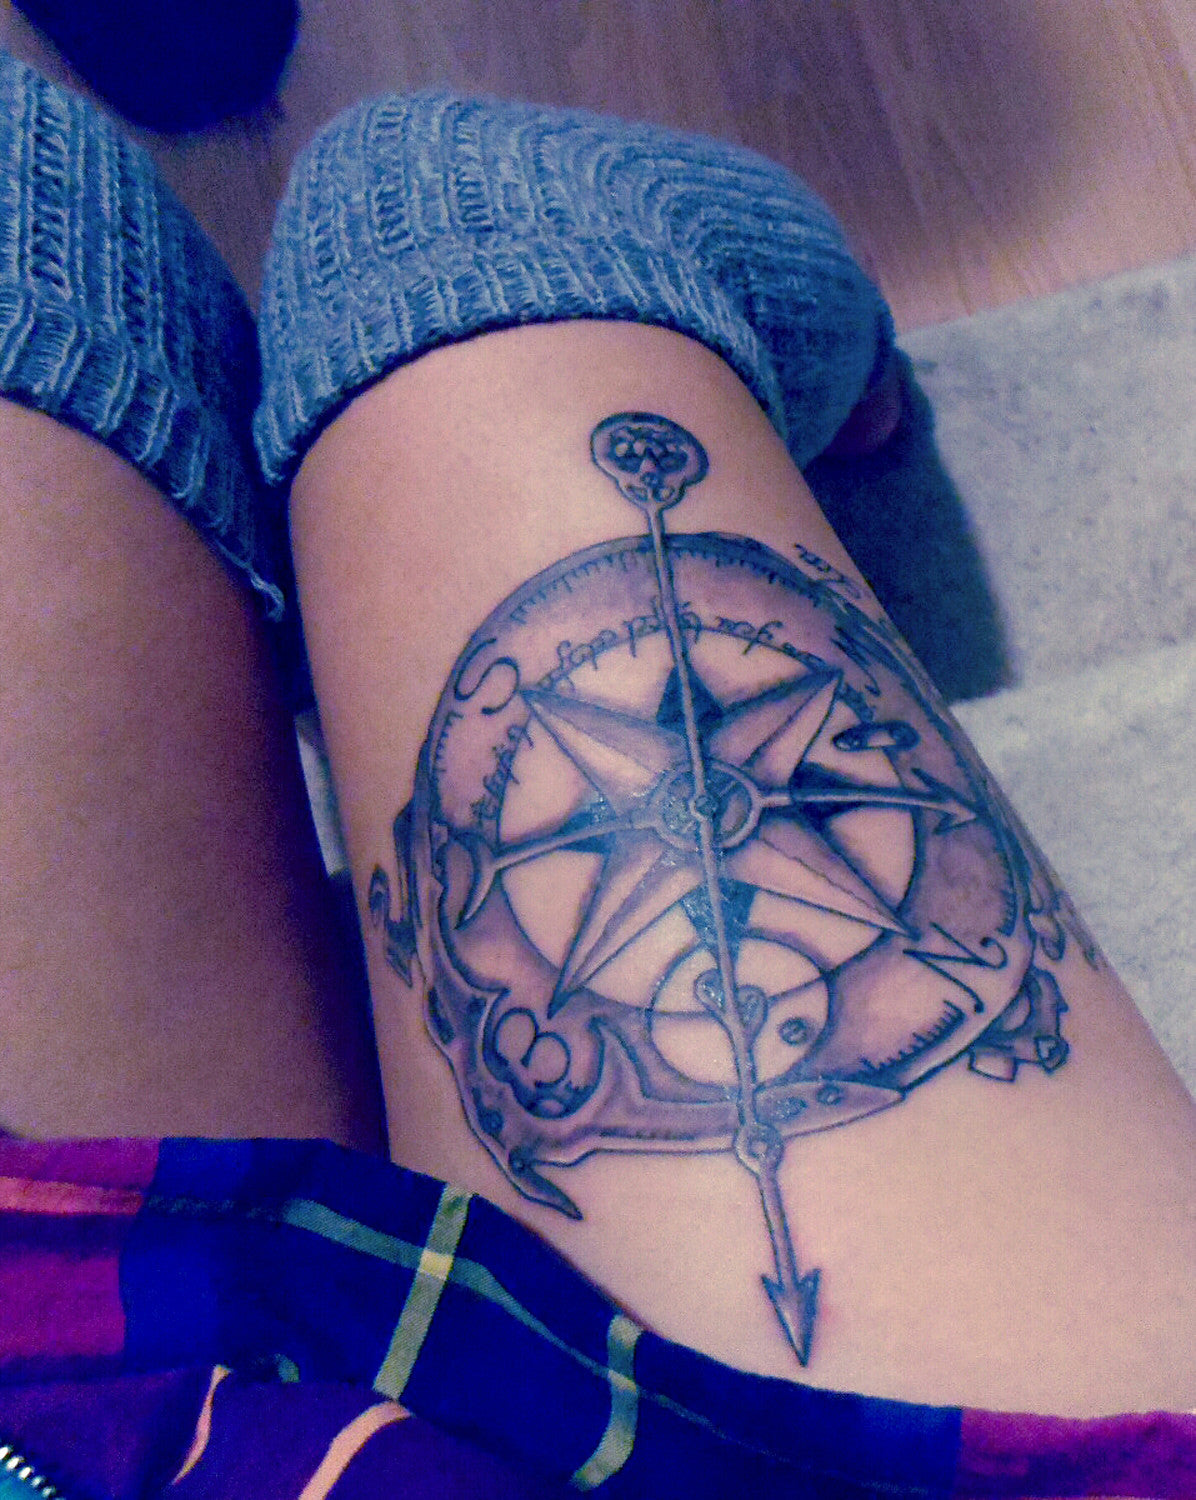 Vintage Compass Tattoo Ideas for Women - Thigh Tat - MyBodiArt.com